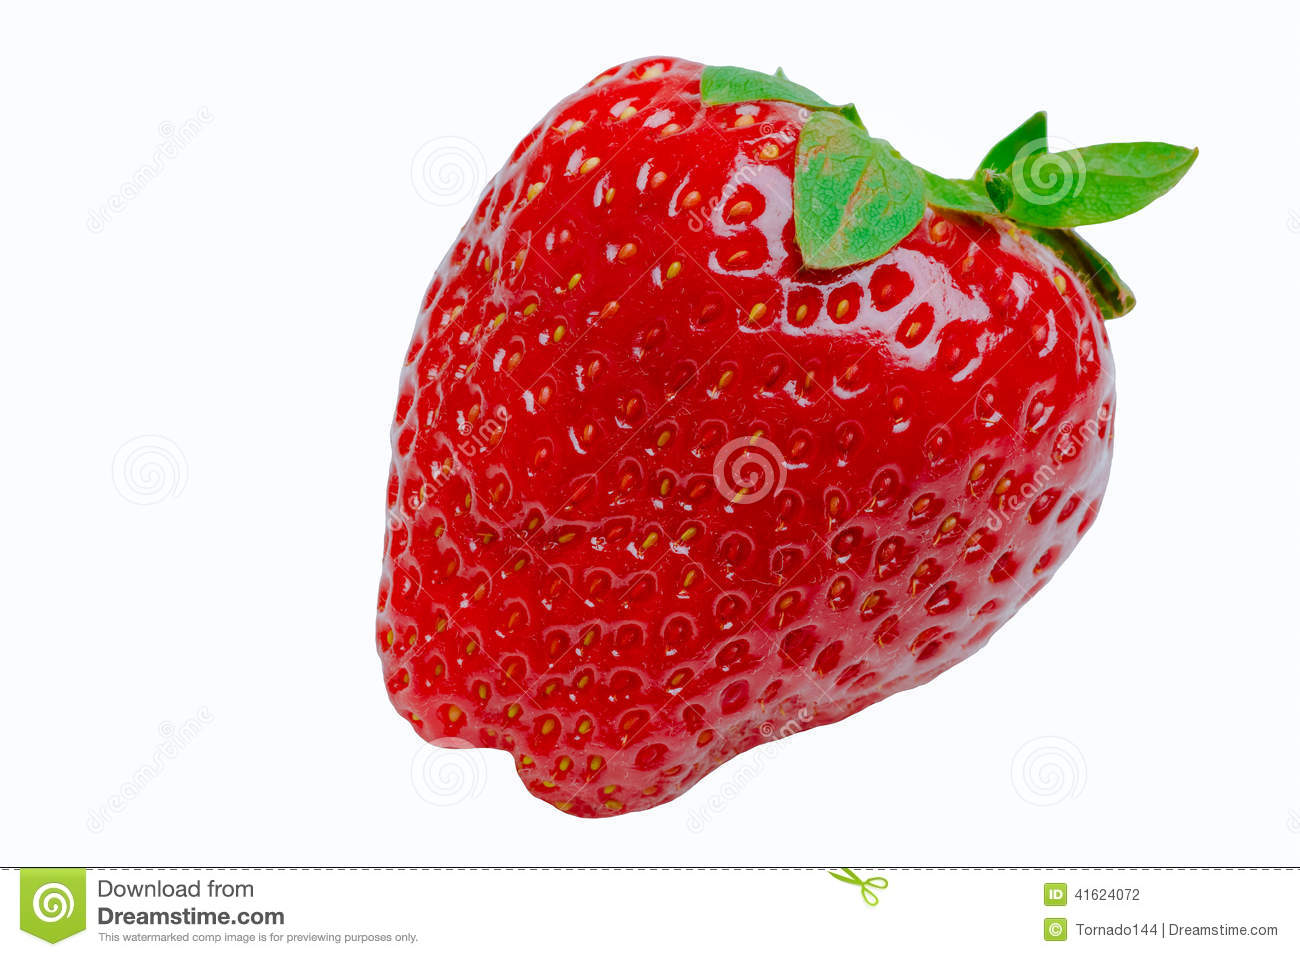 strawberry plains divorced singles dating site Our site has 1000's of members in our chat room with som, knoxville chat city  strawberry plains knoxville chat  connect with sexy singles near you .